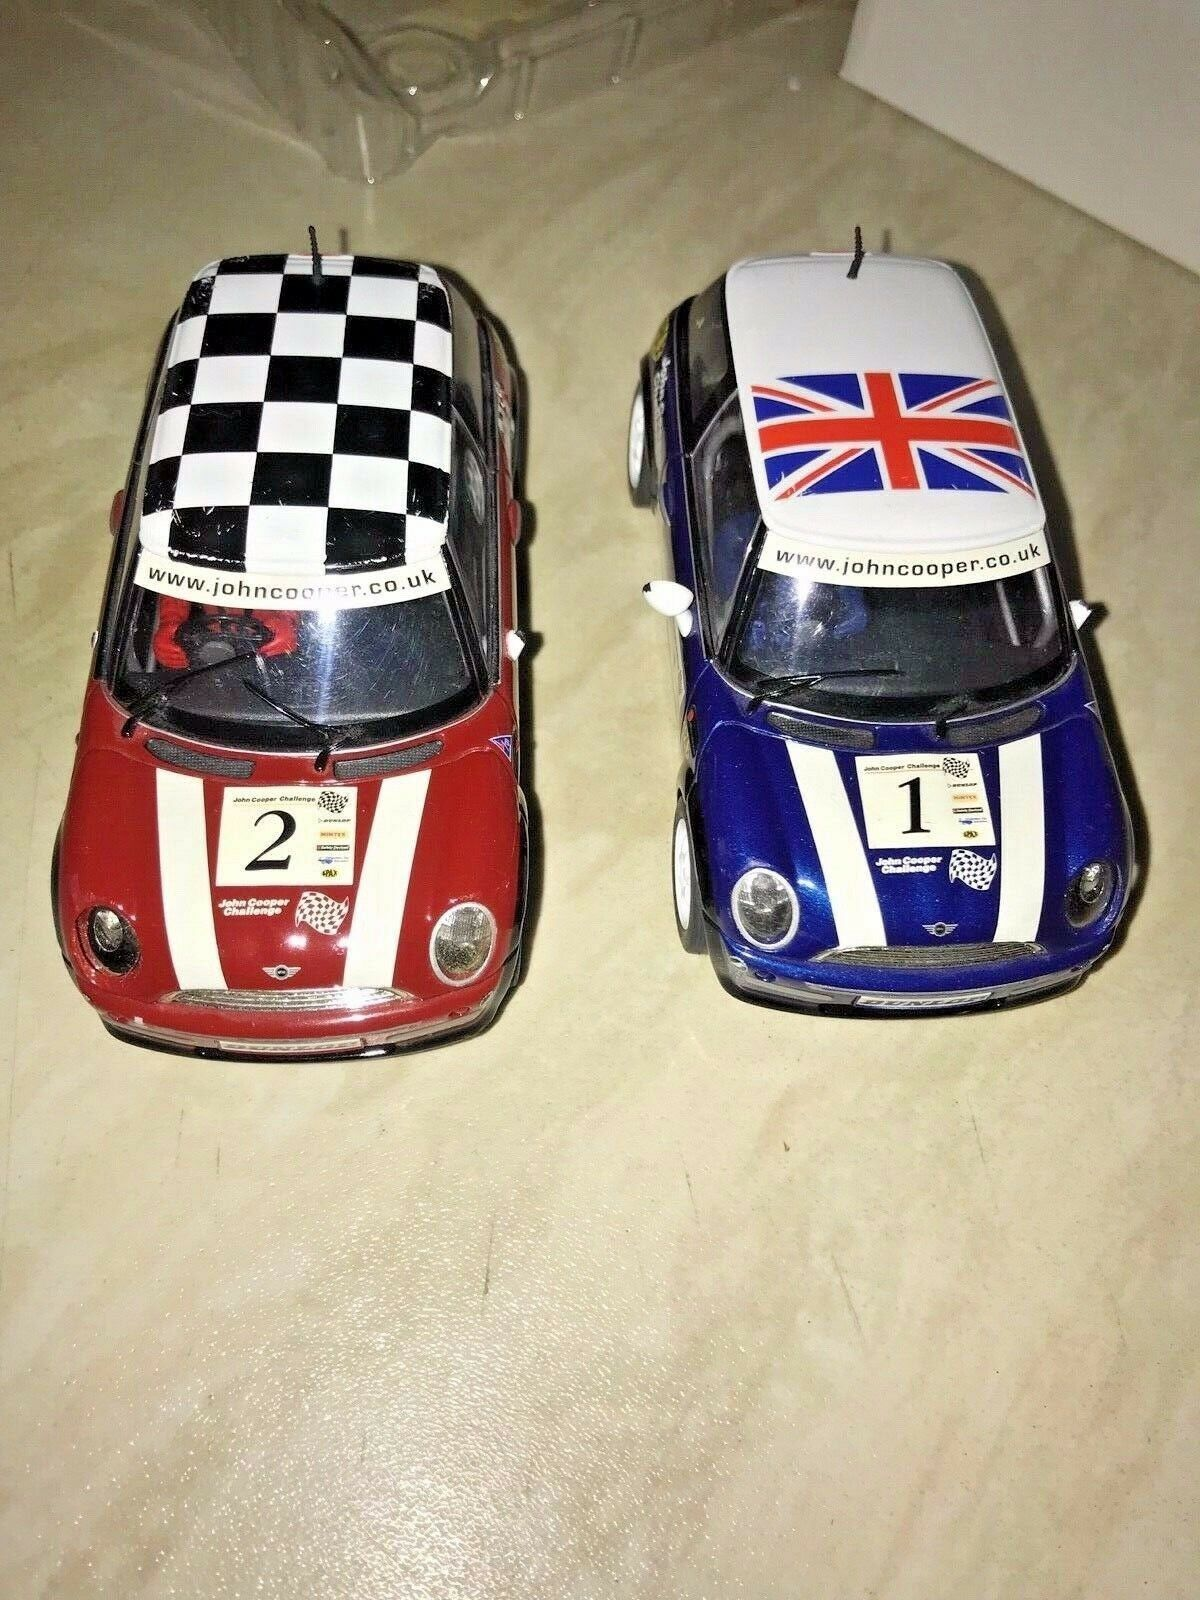 SCALEXTRIC MINI MAYHEM - GREAT CONDITION - DOOR MIRRORS BROKE OFF CARS